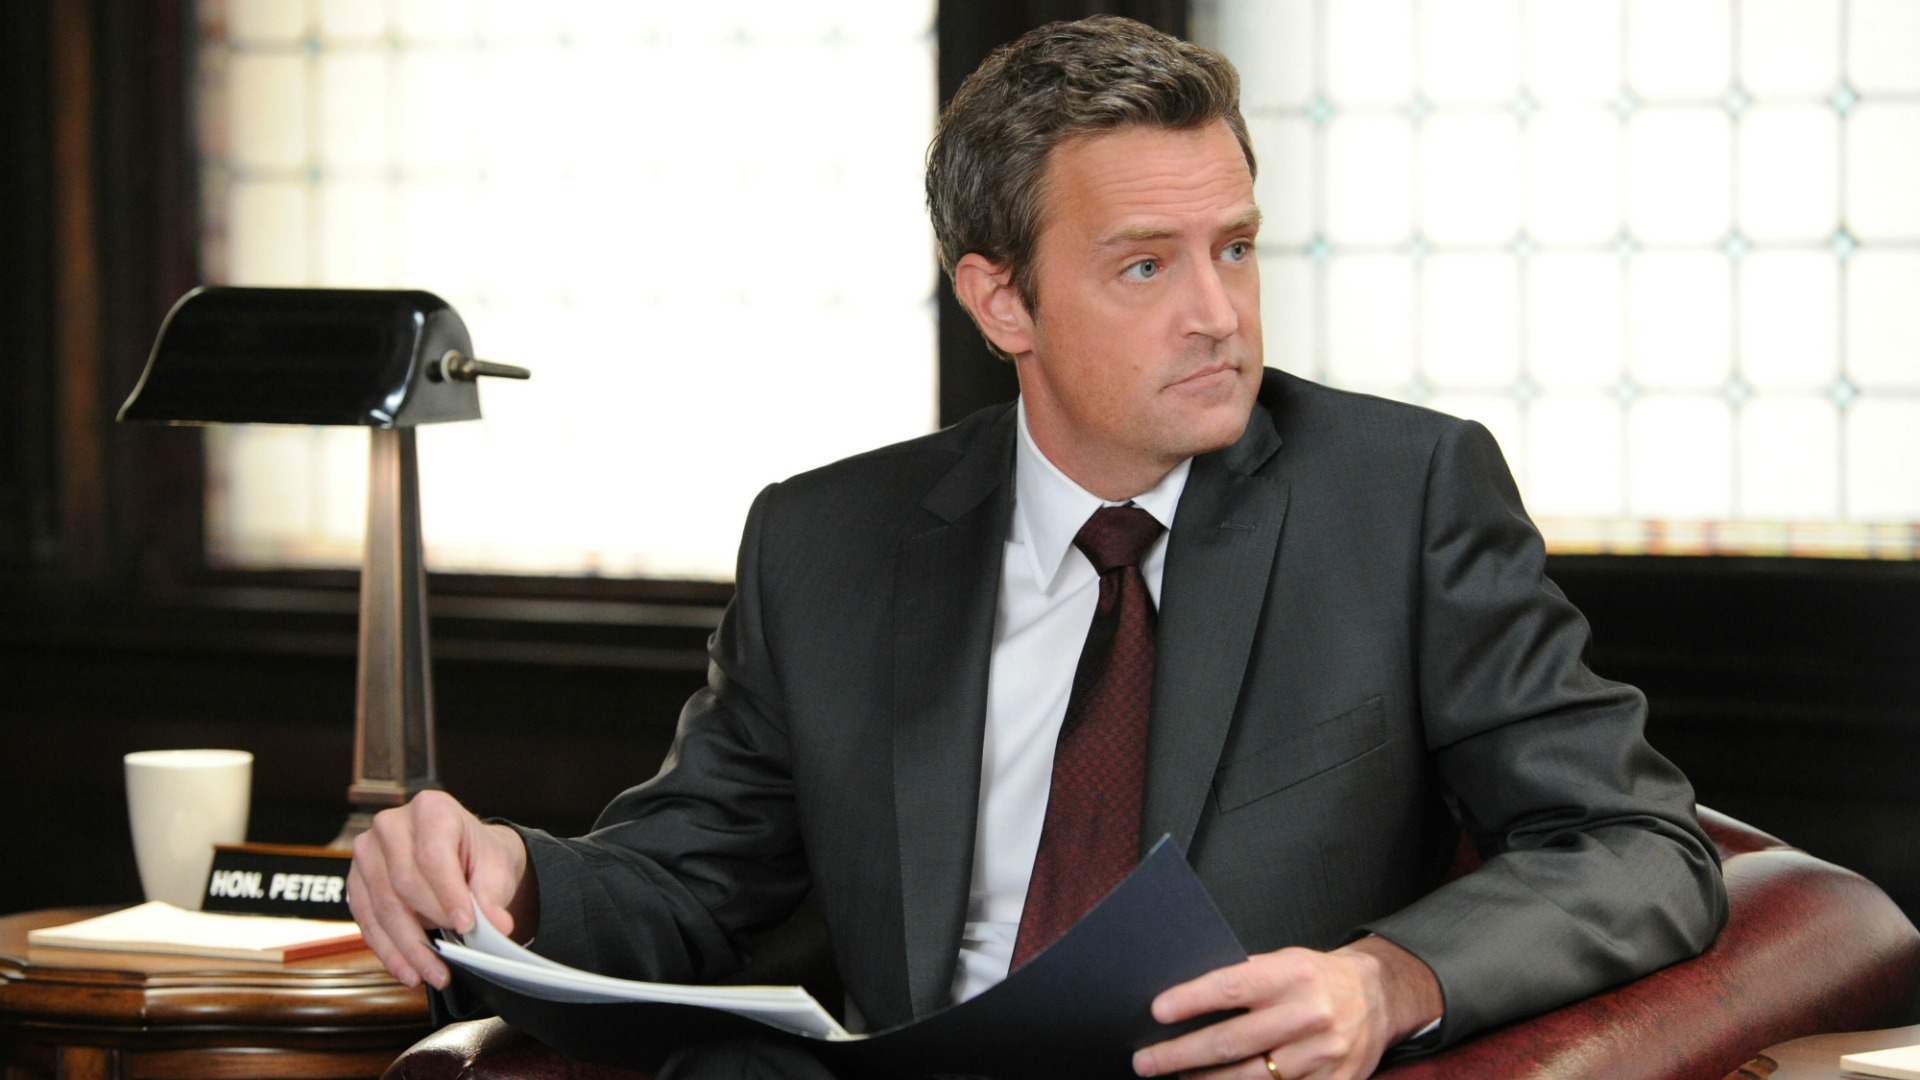 Matthew Perry as Mike Kresteva